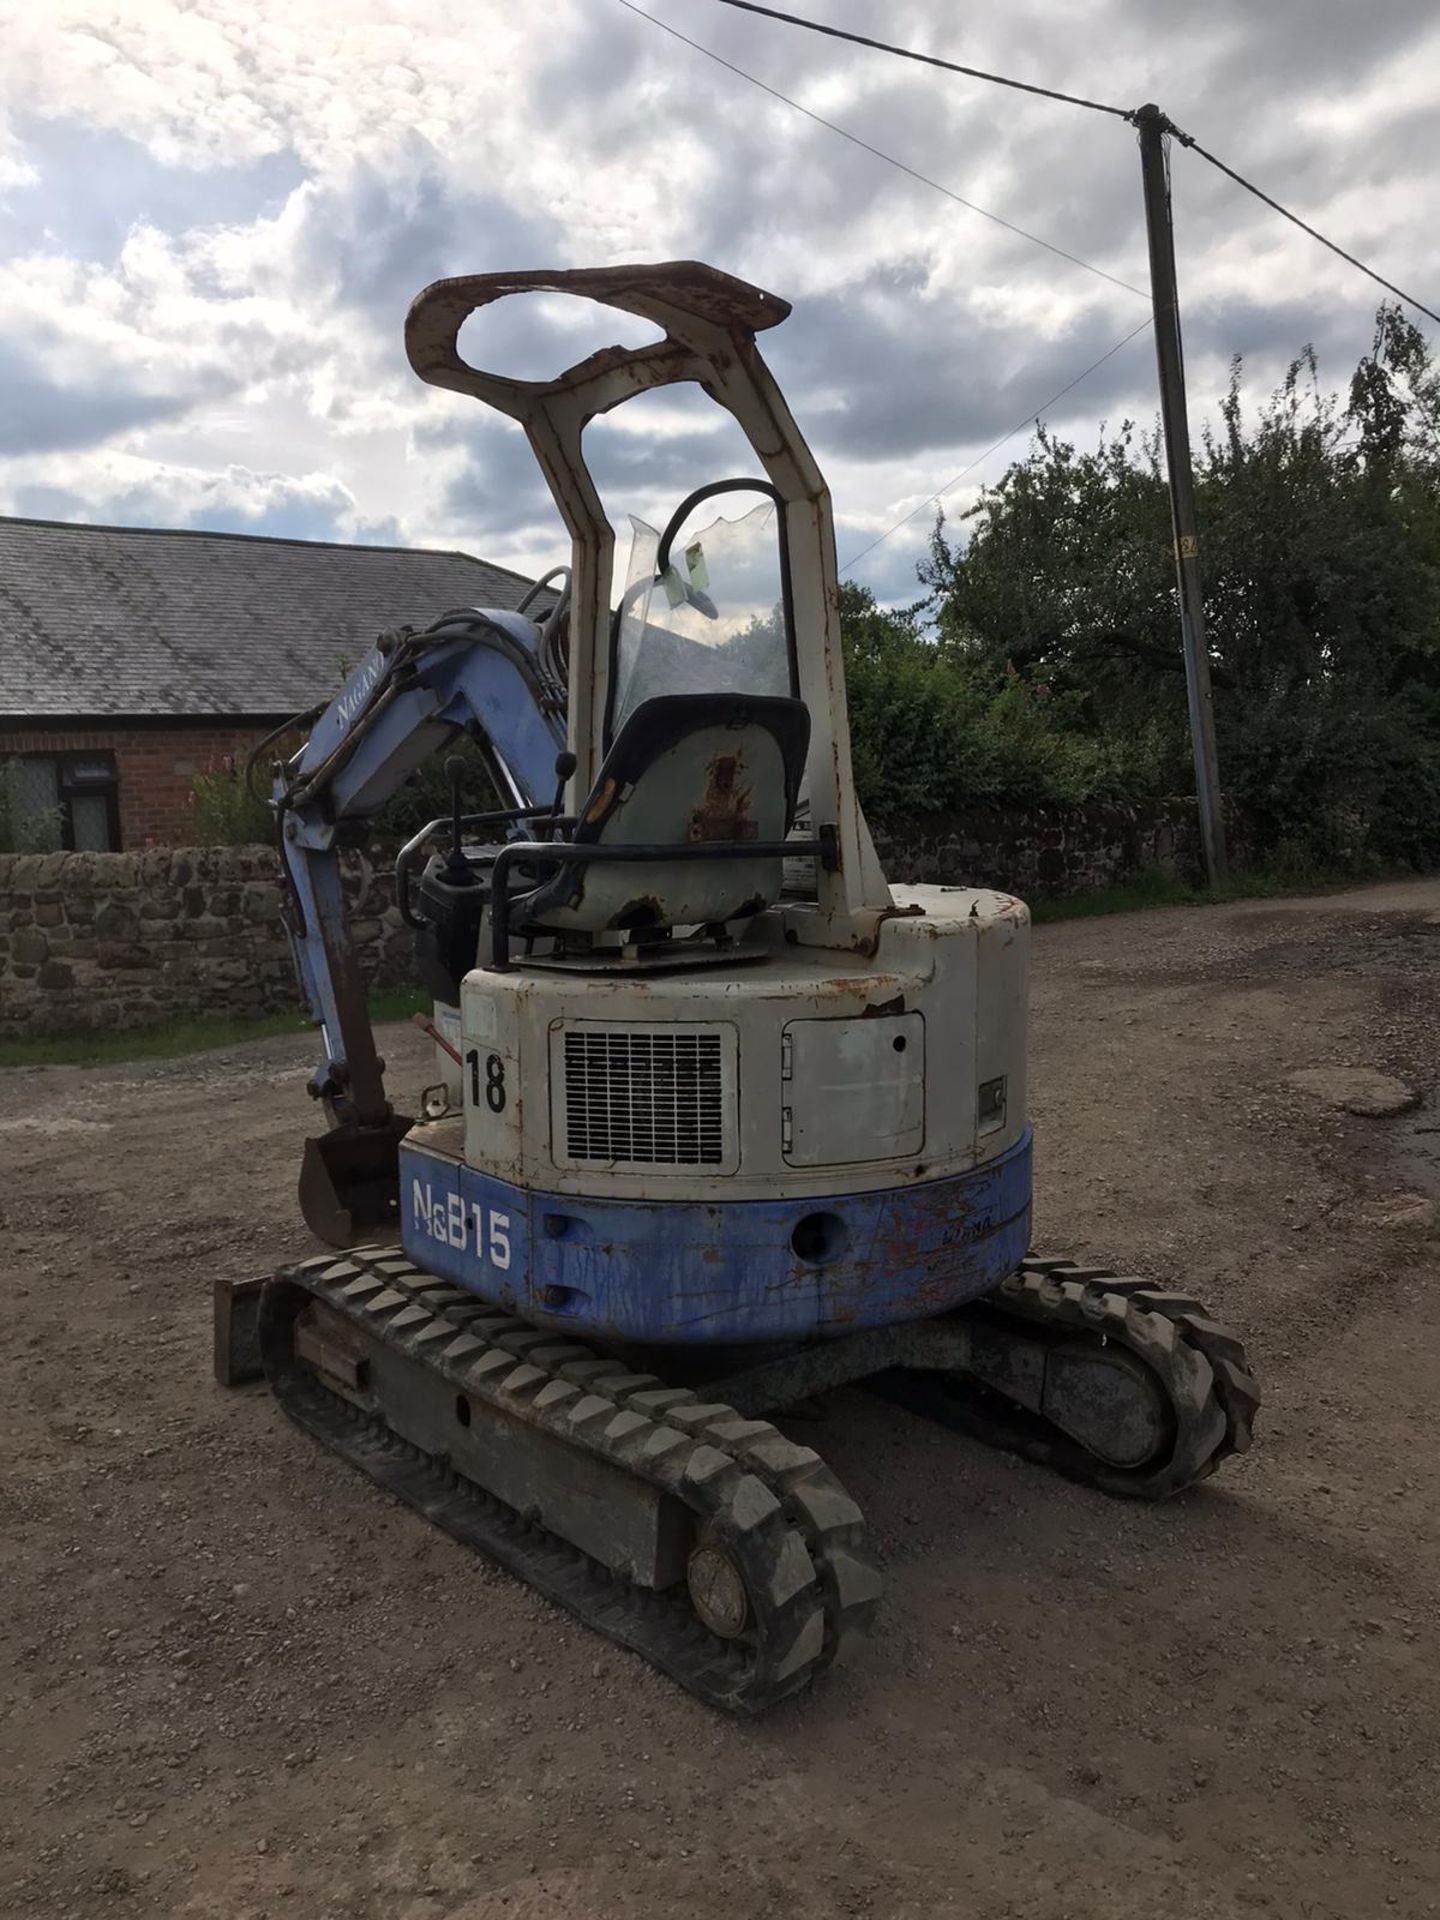 Lot 15 - HANNEX N&B 15 RUBBER TRACKED CRAWLER EXCAVATOR, RUNS, DRIVES & DIGS, TRACKS ARE LIKE NEW *PLUS VAT*